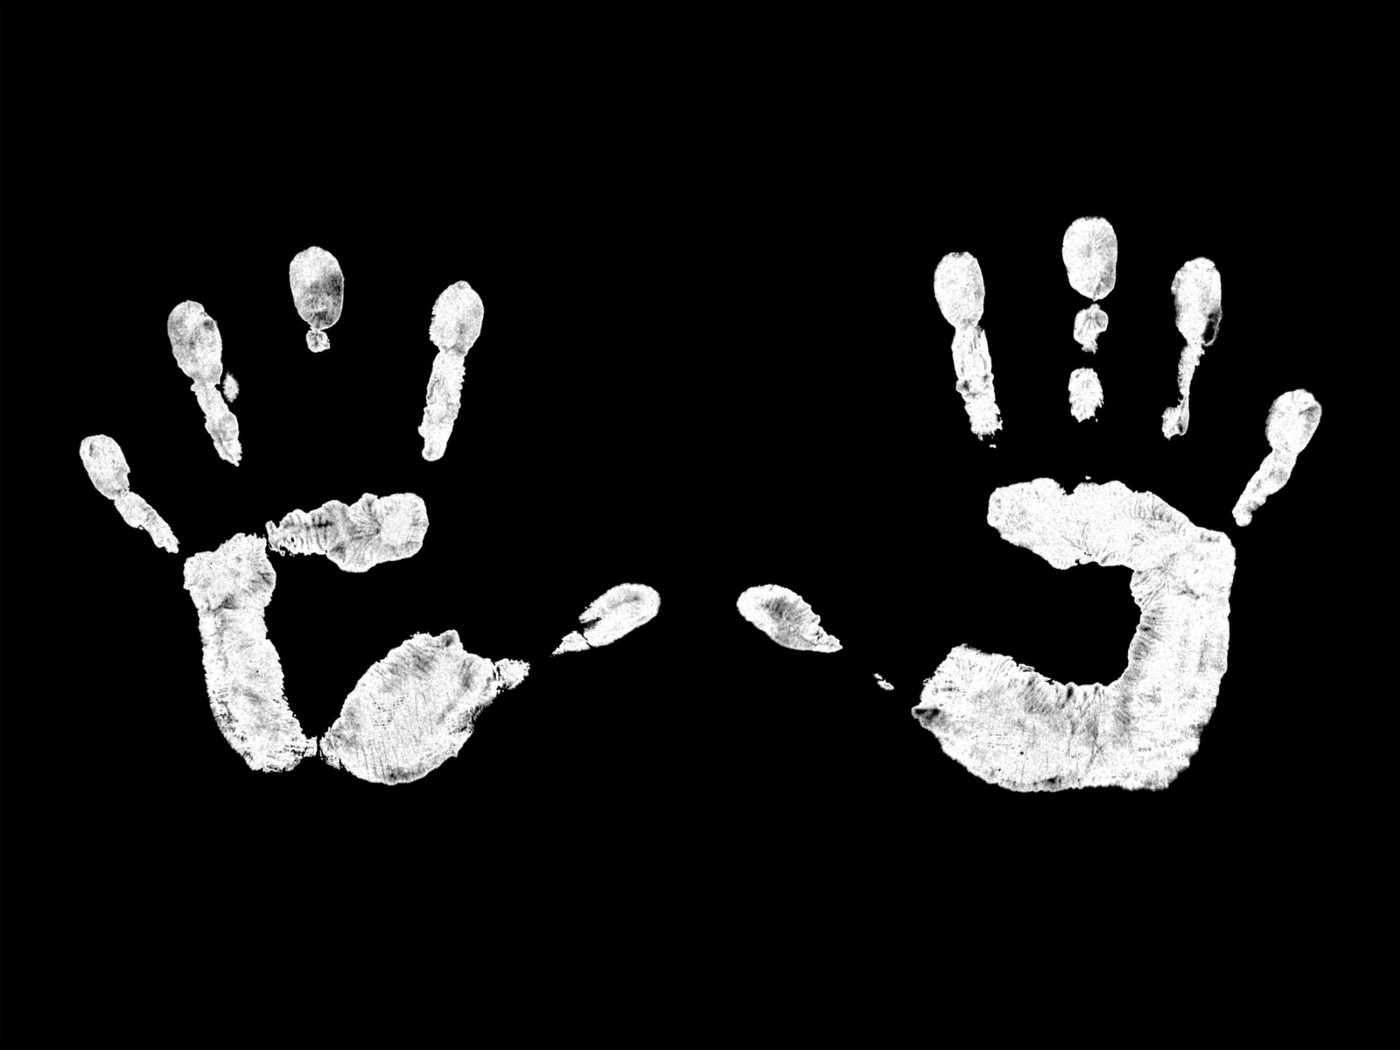 finger prints of two palms